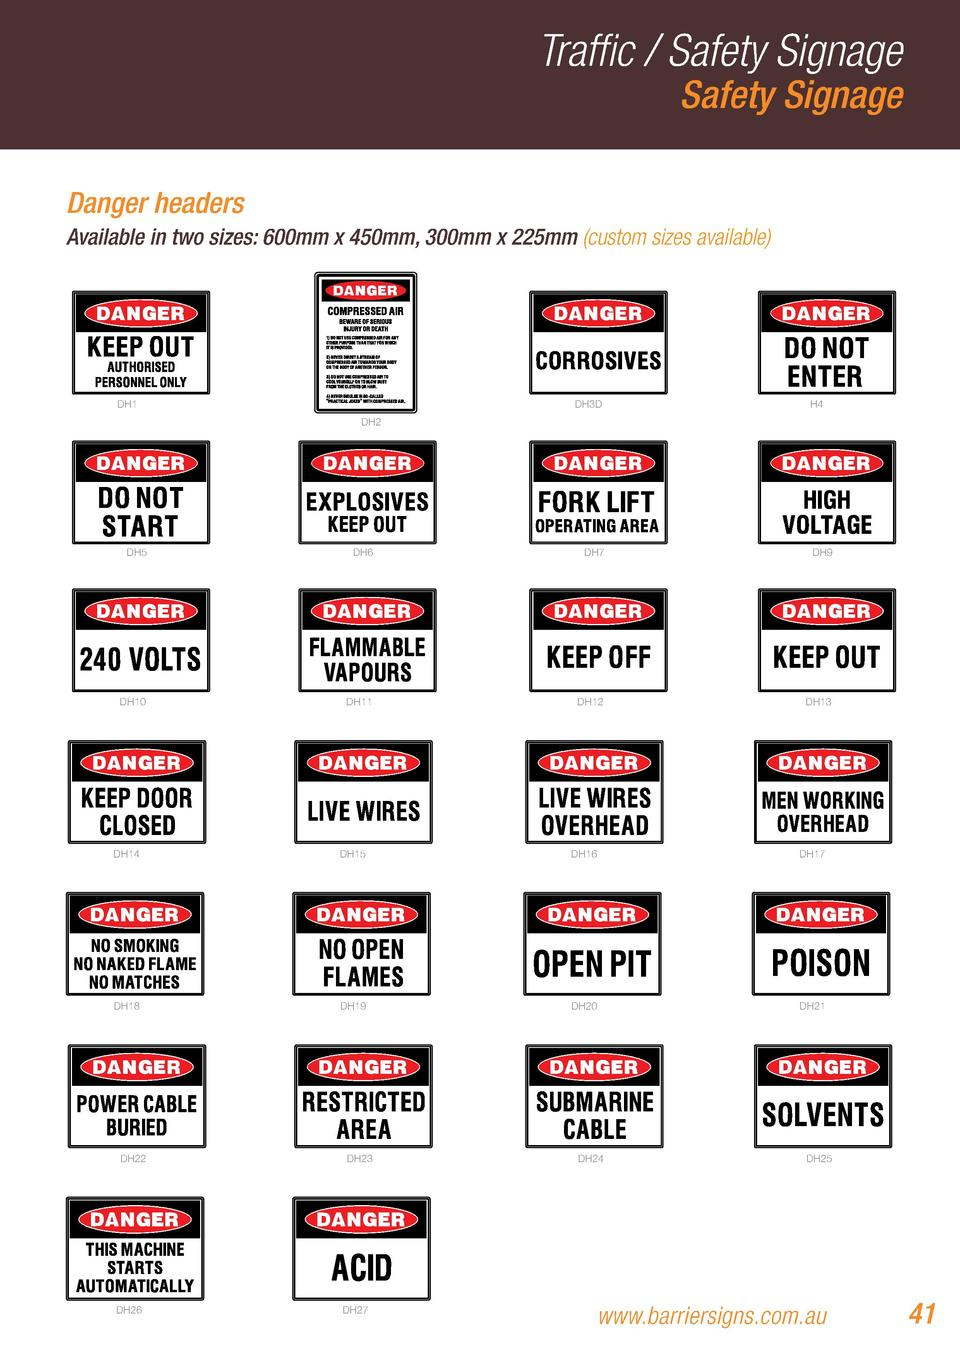 Traffic   Safety Signage Safety Signage  Danger headers Available in two sizes  600mm x 450mm, 300mm x 225mm  custom sizes...